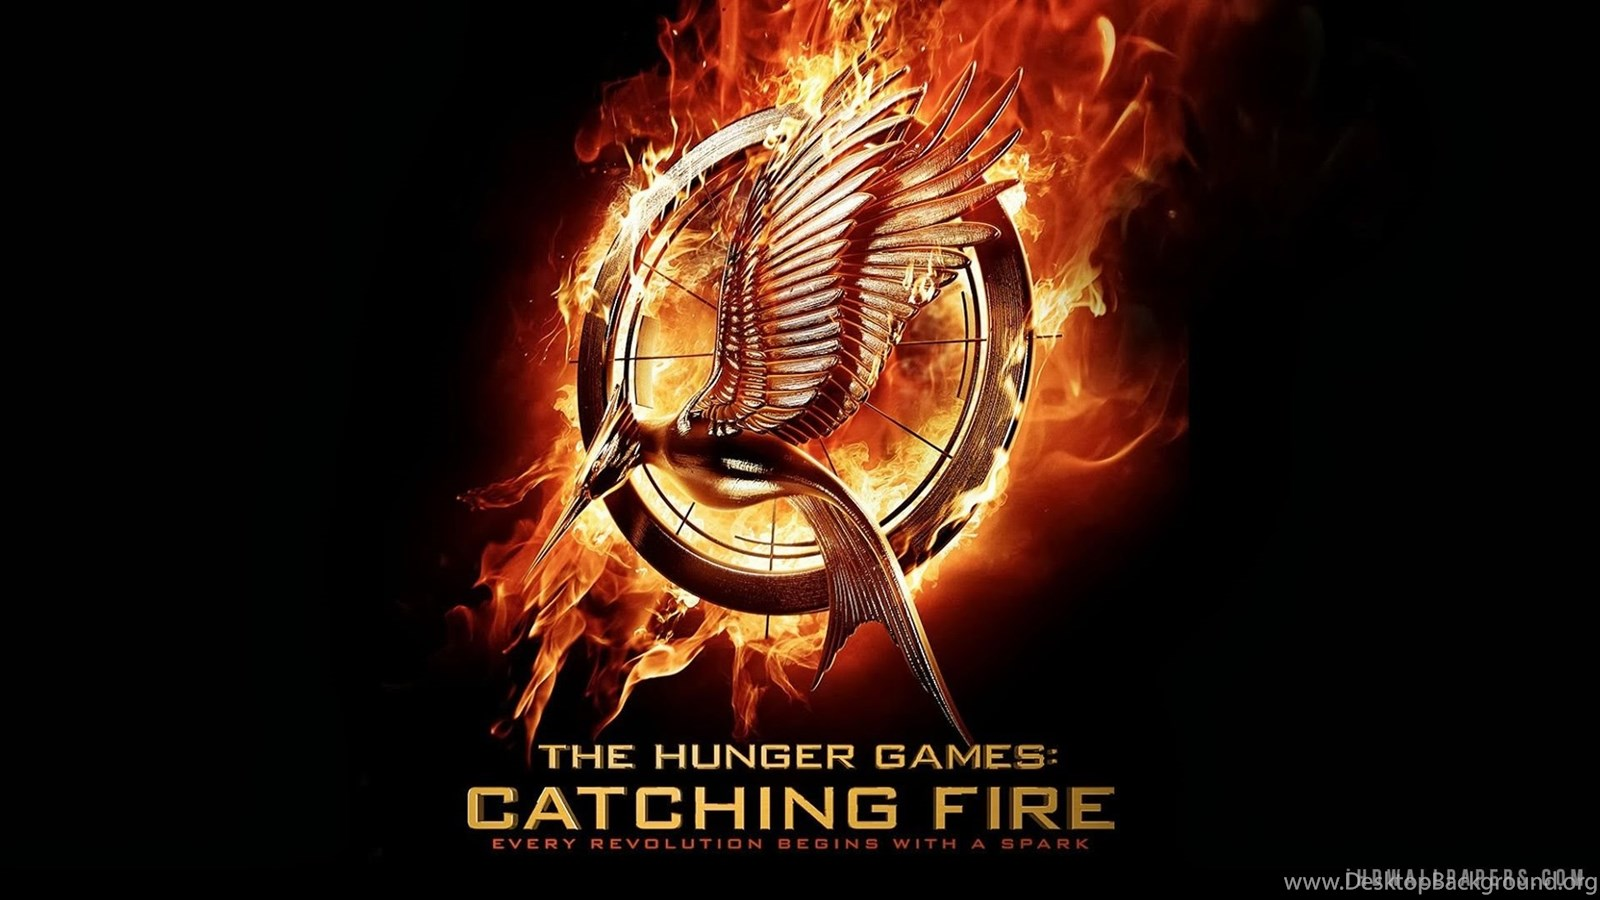 the hunger games symbolism essay Themes of the hunger games 5 pages 1193 words january 2015 saved essays save your essays here so you can locate them quickly.